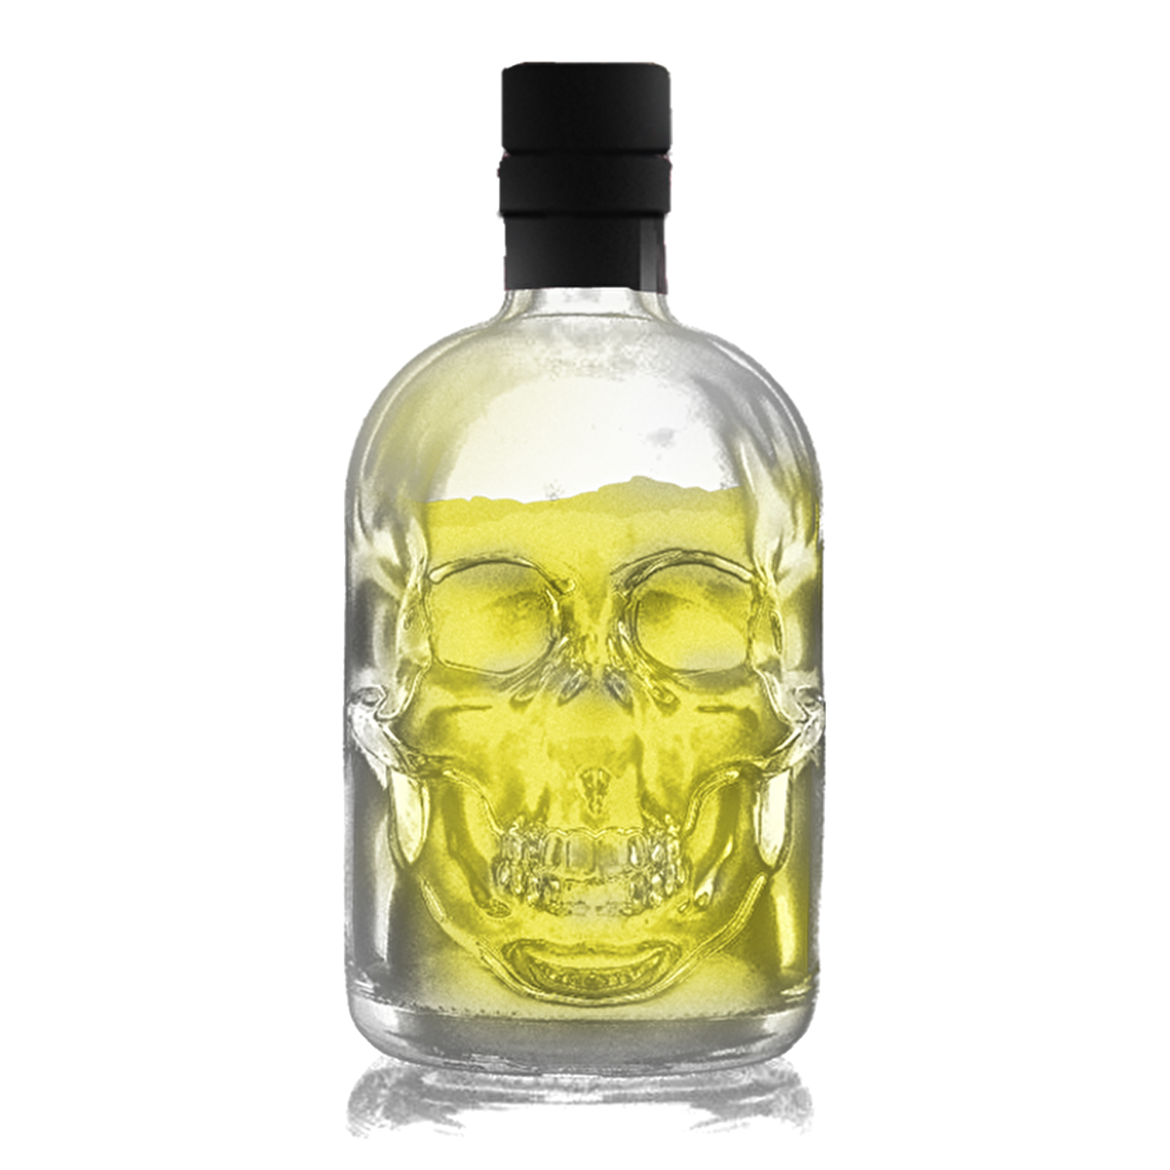 Tf labs pre workout. Poison bottle png